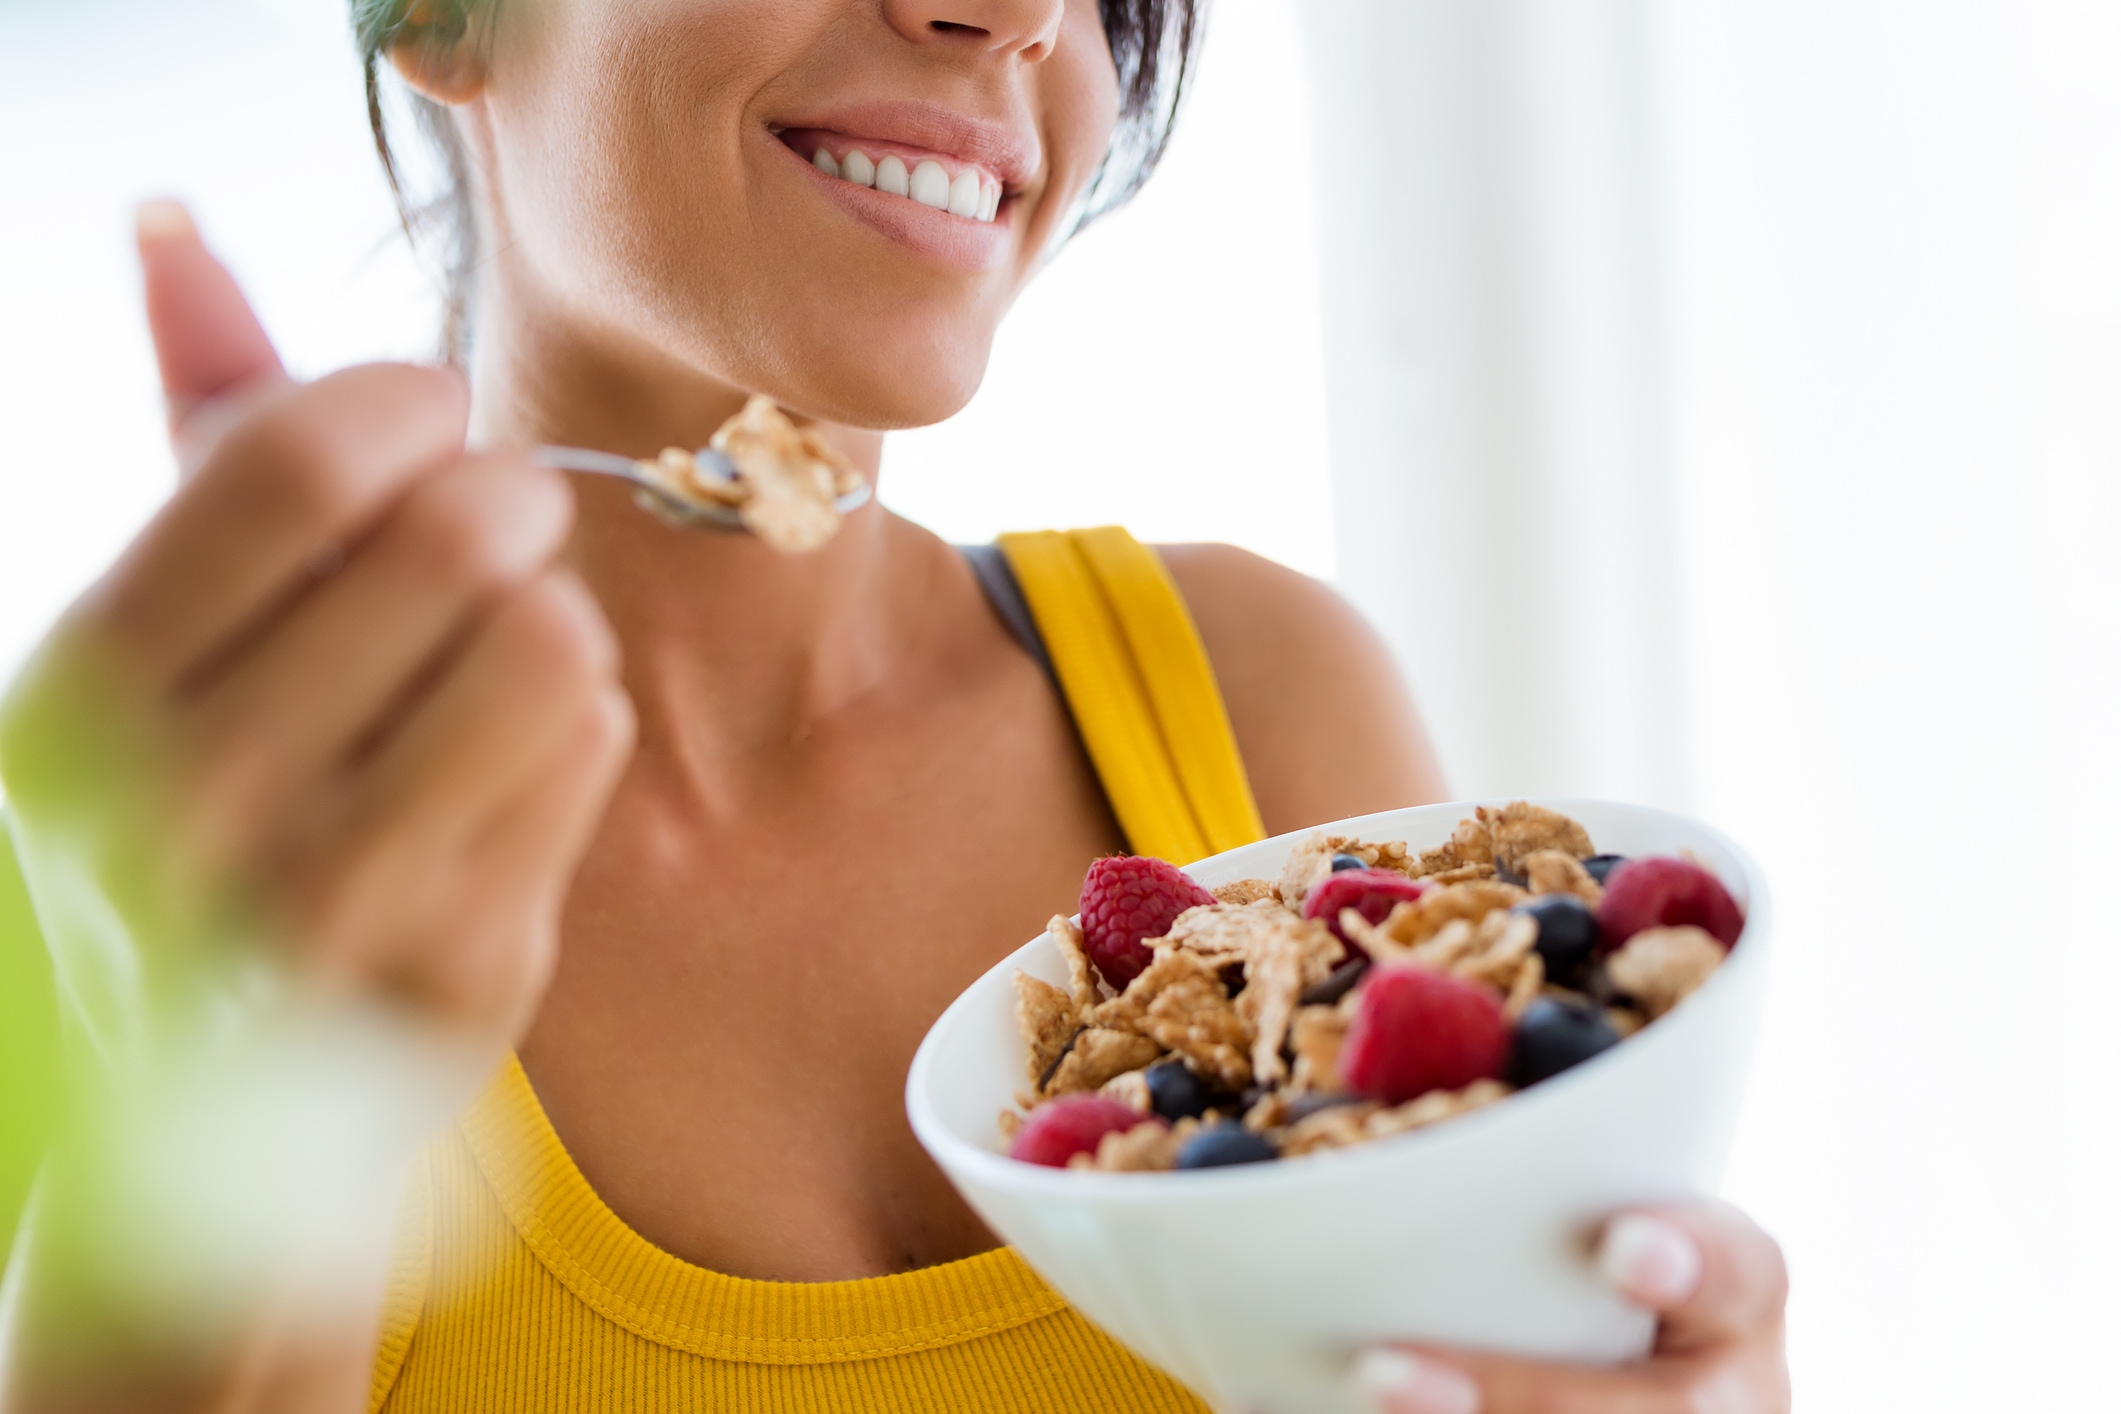 Smiling woman eating cornflakes with berries